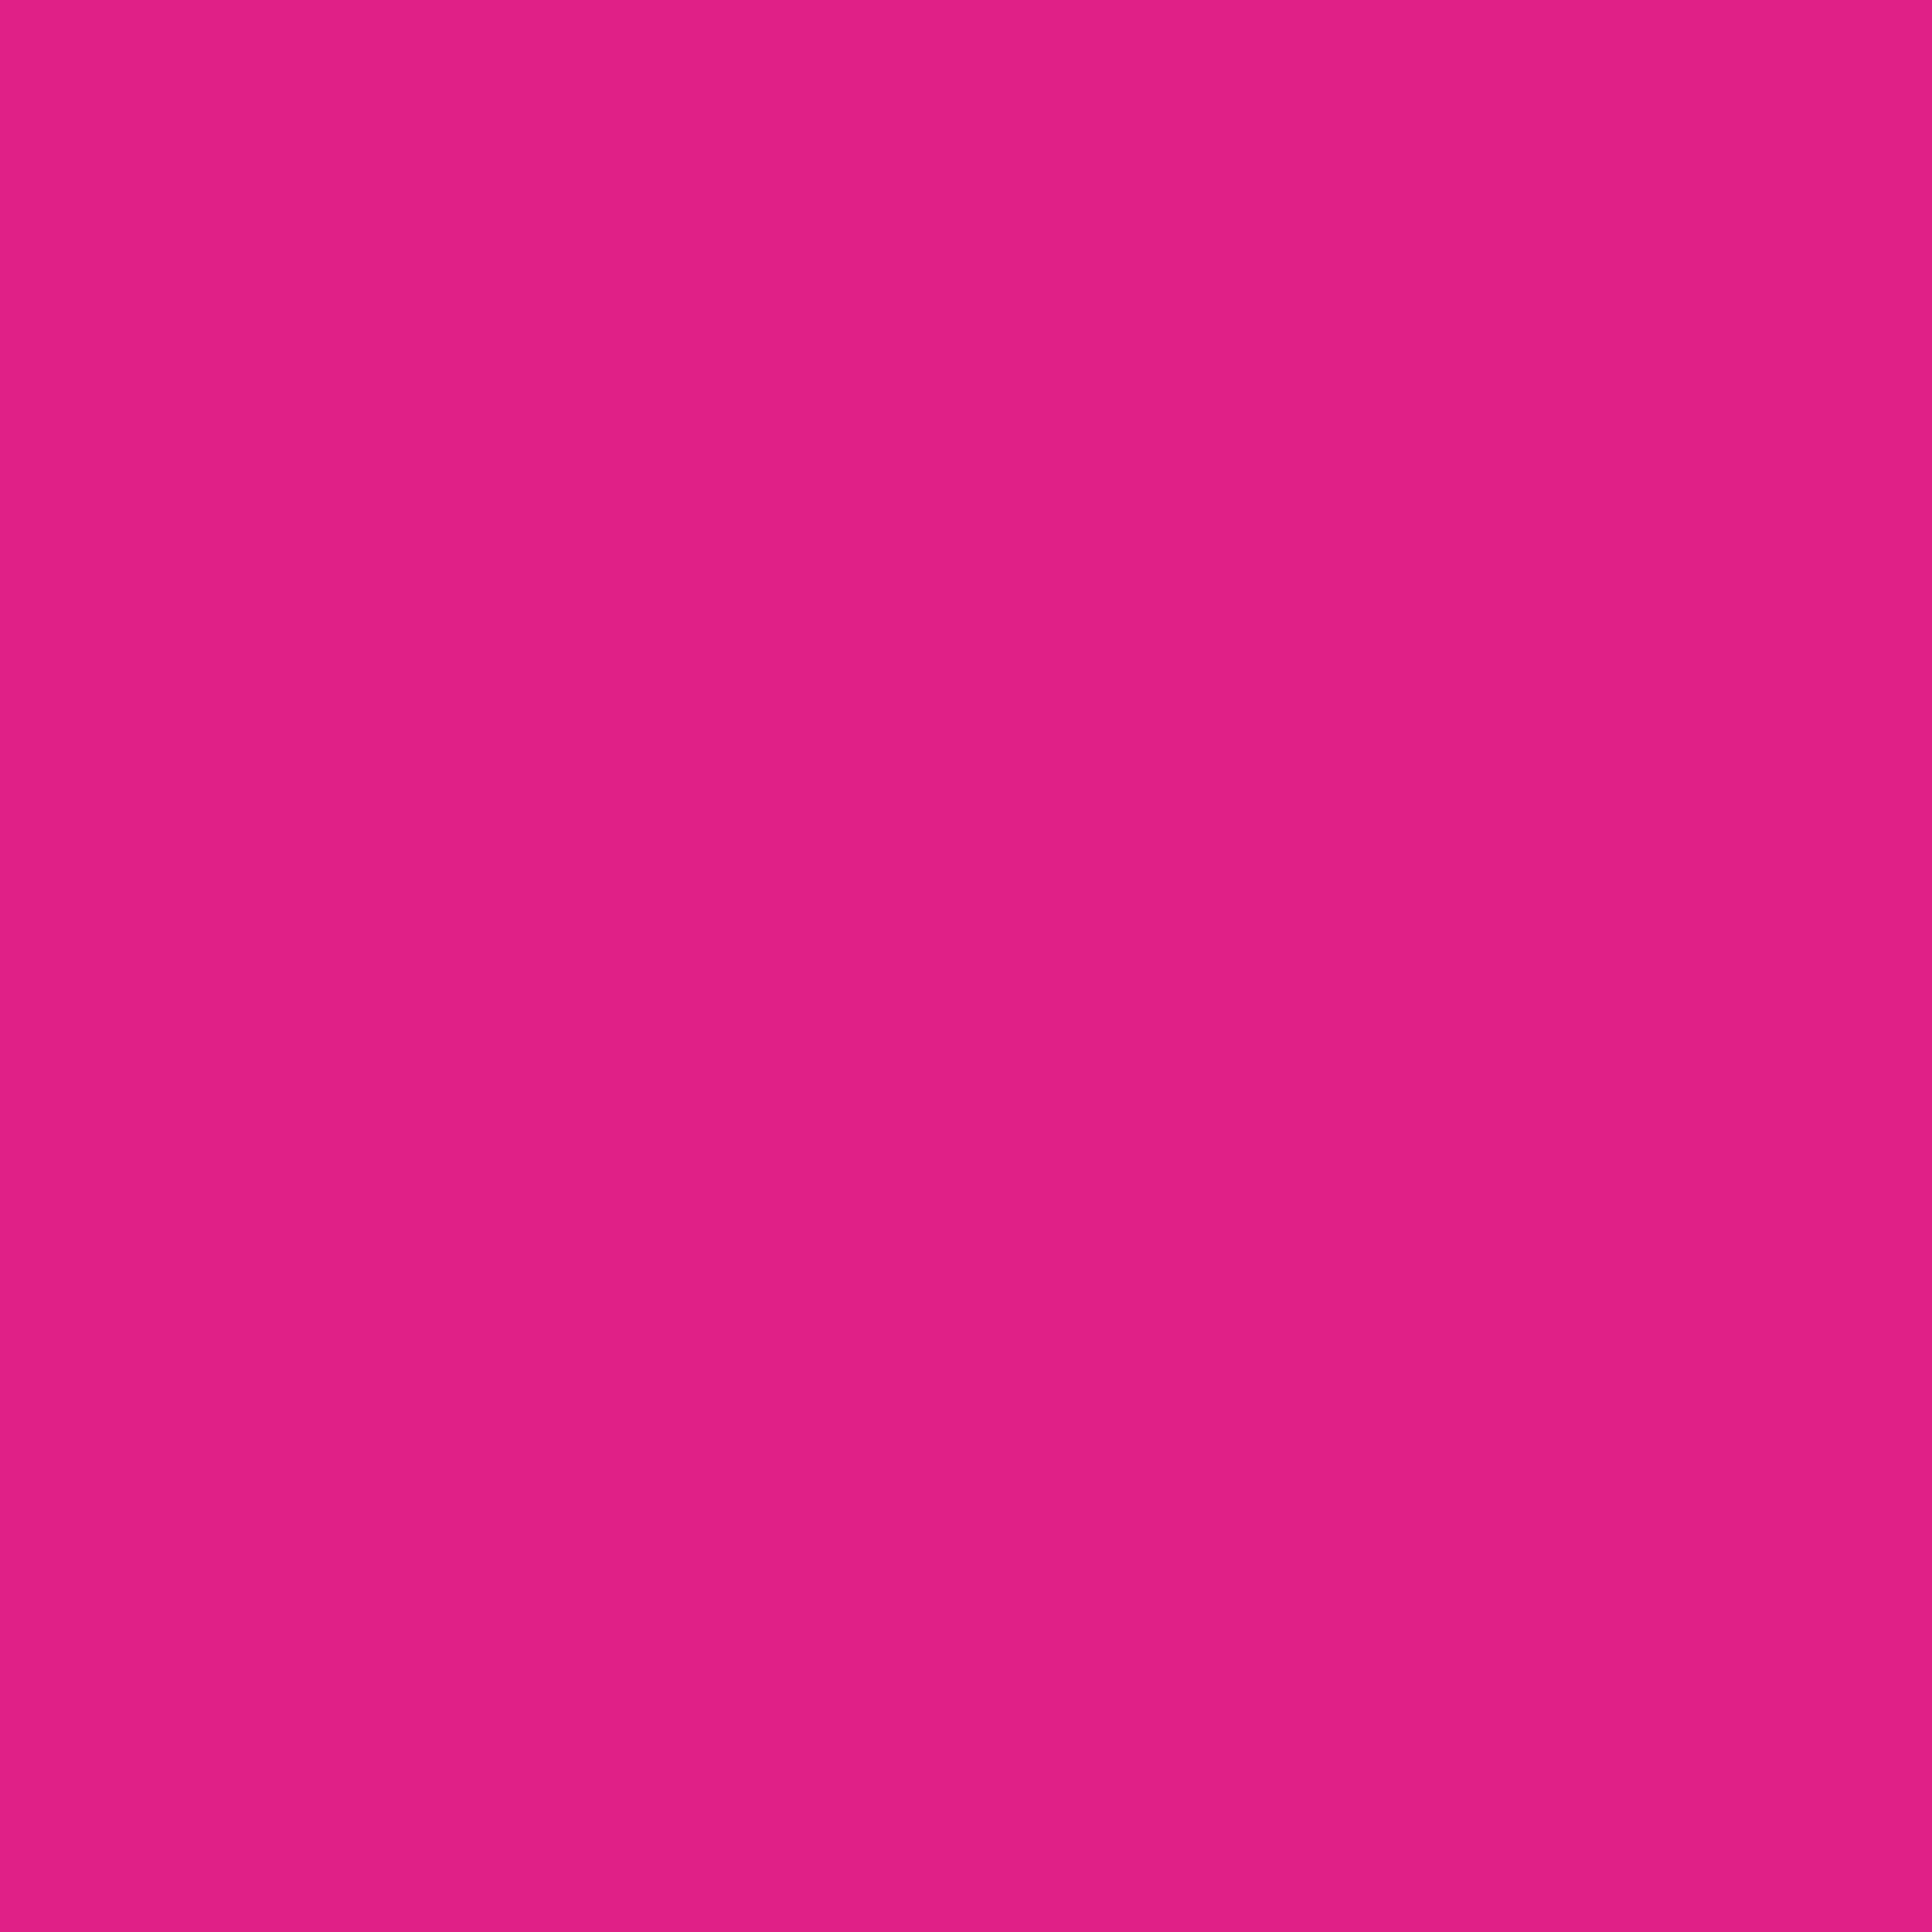 2048x2048 Barbie Pink Solid Color Background